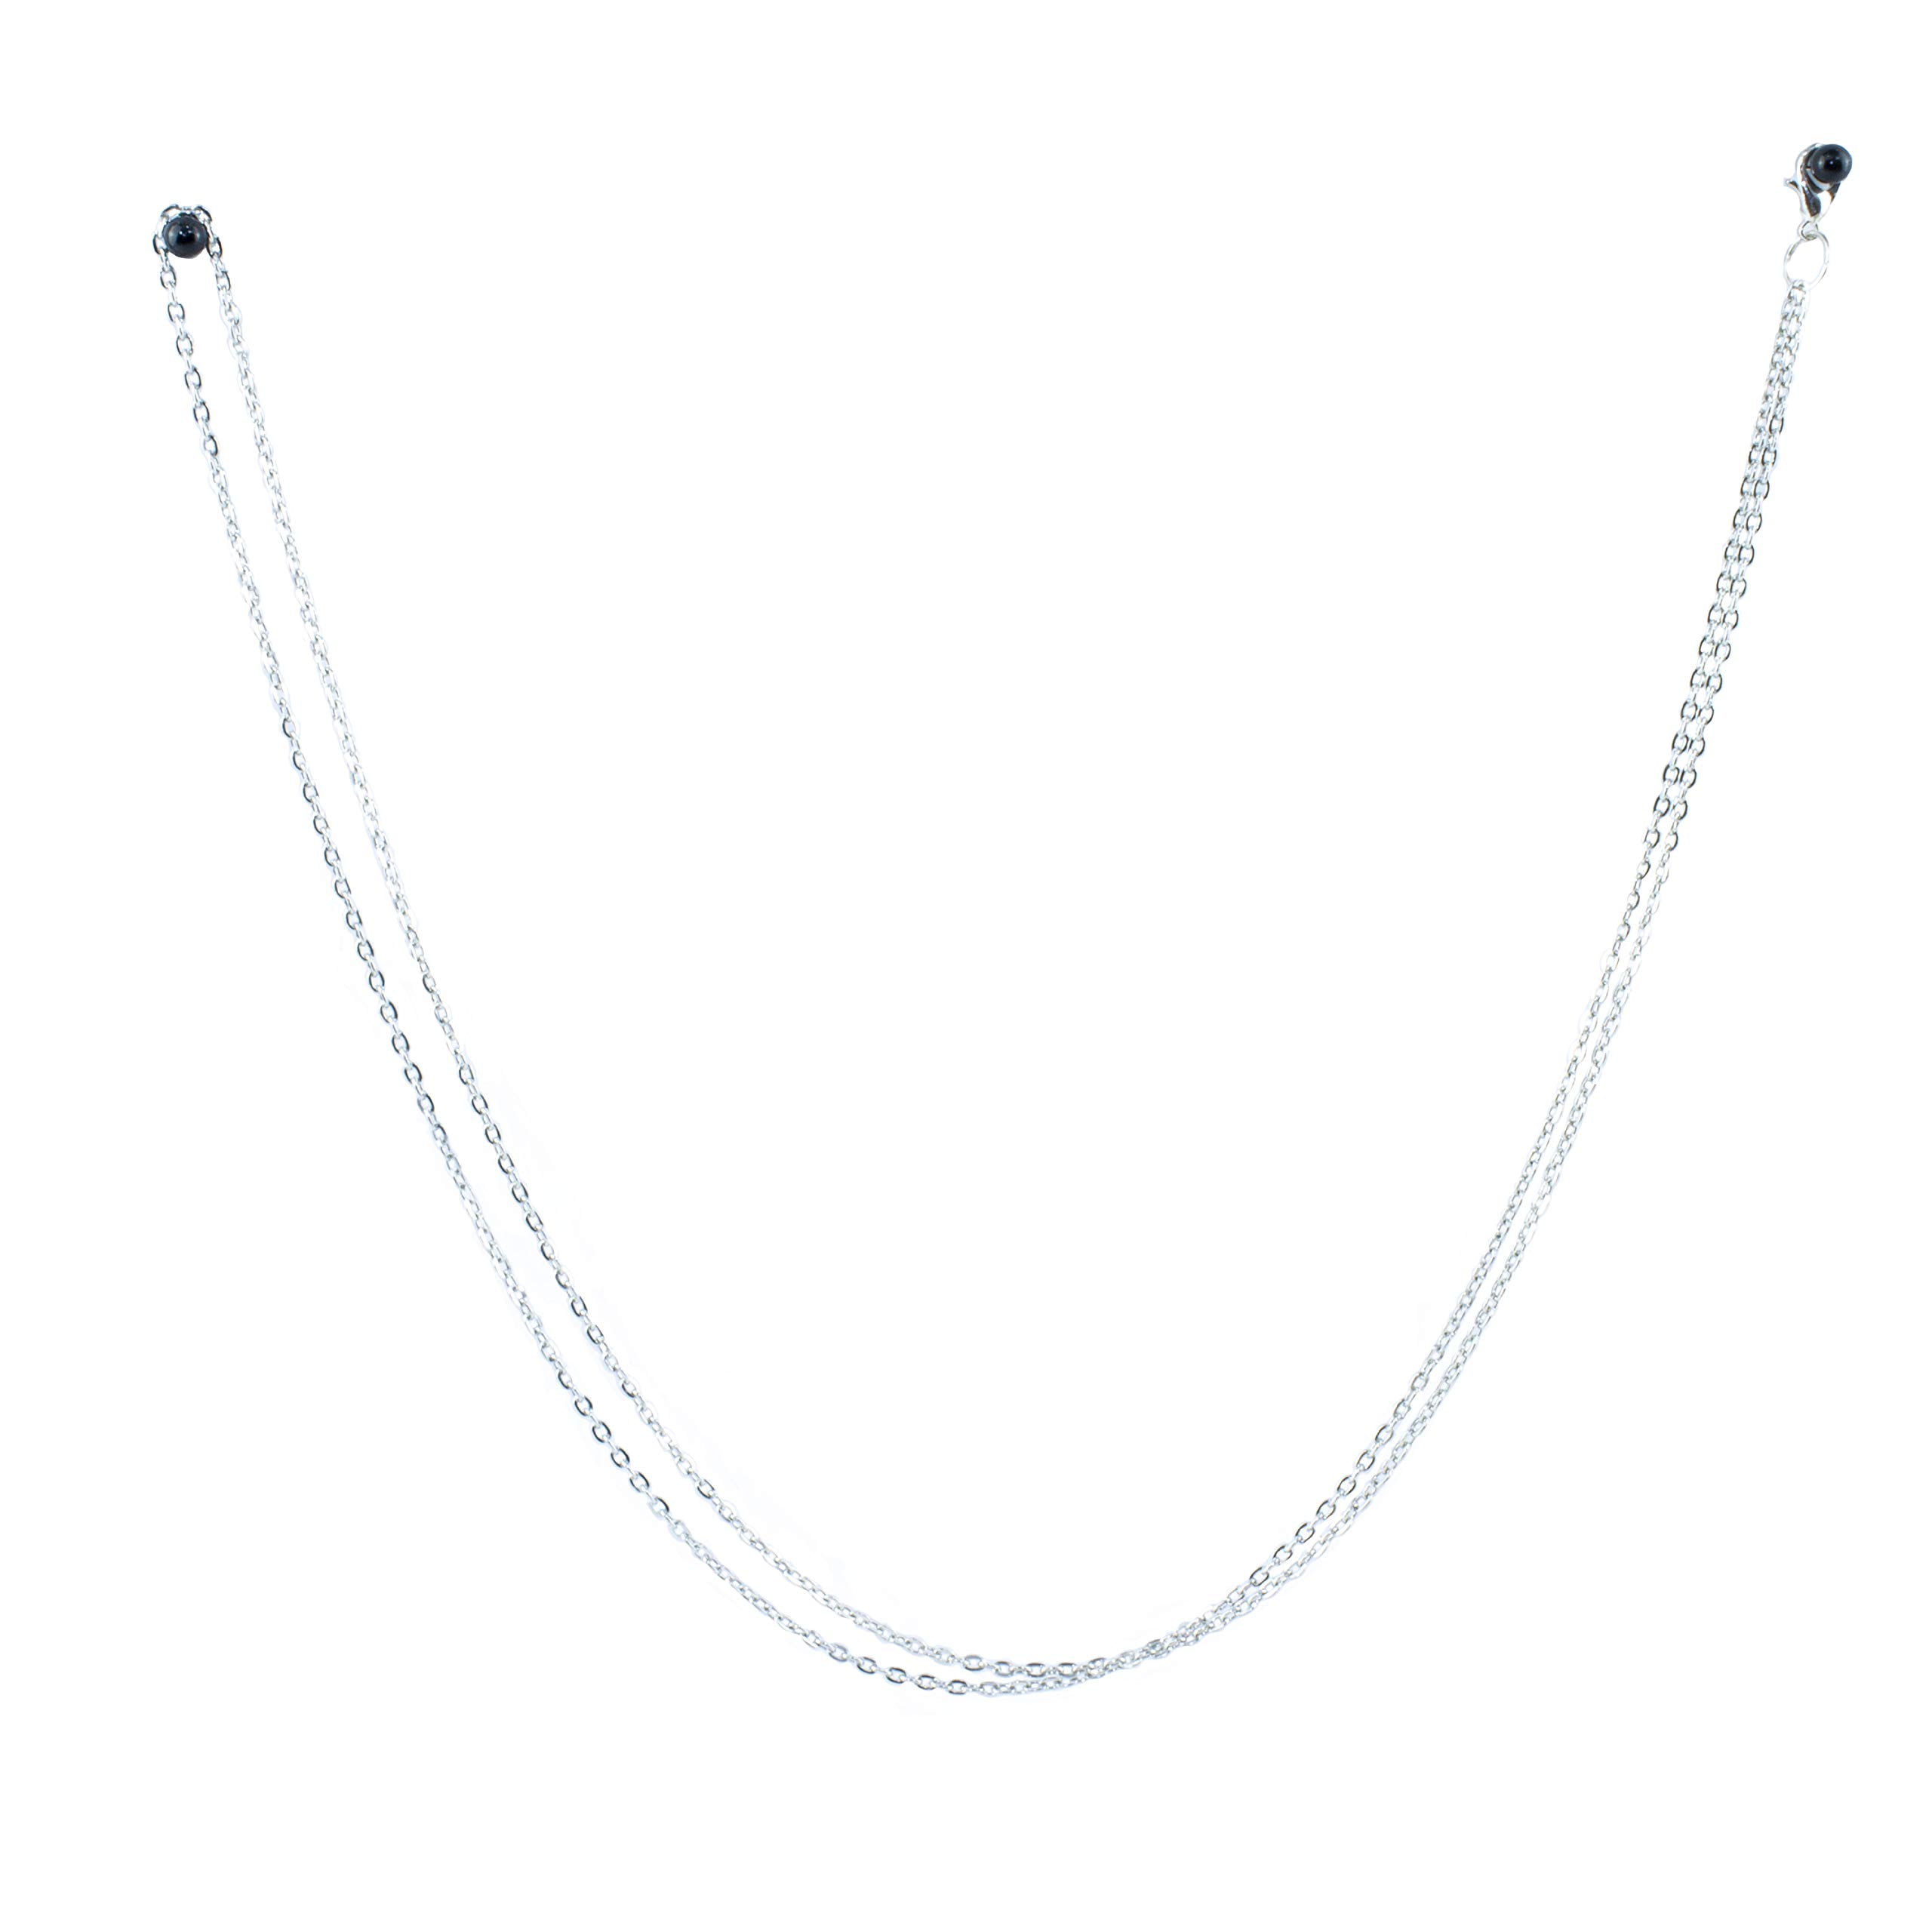 Monocle Chain - Silver